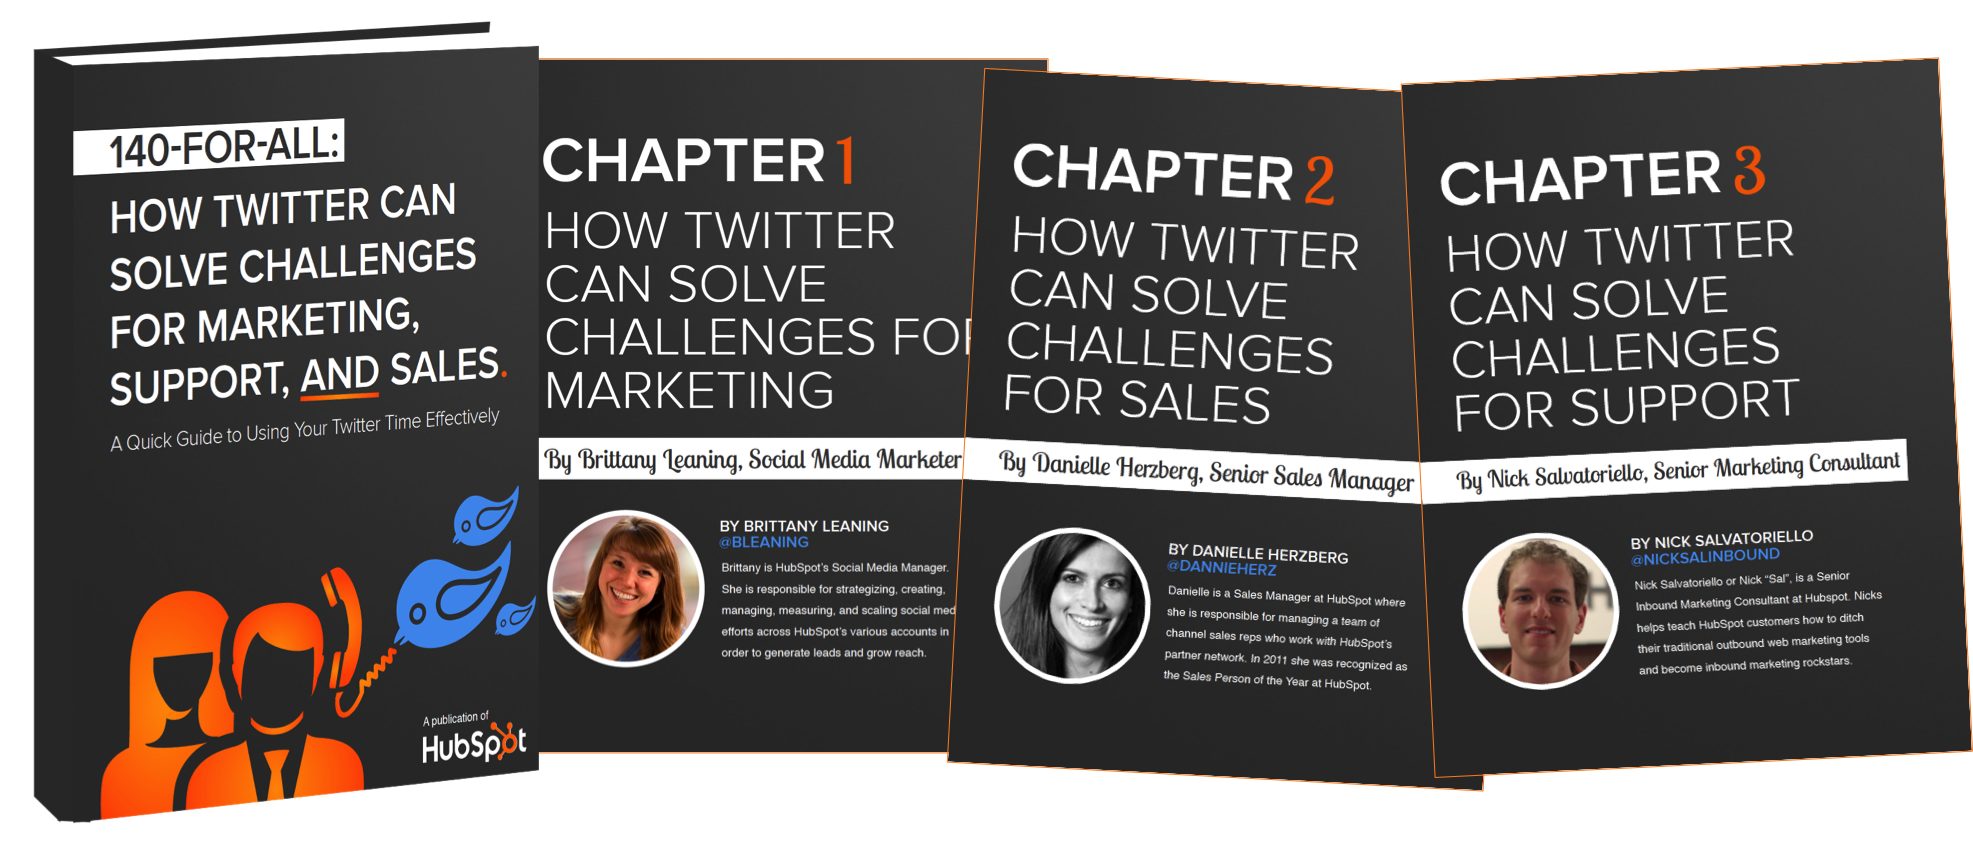 140-for-all-how-twitter-can-solve-challenges-for-marketing-support-and-sales